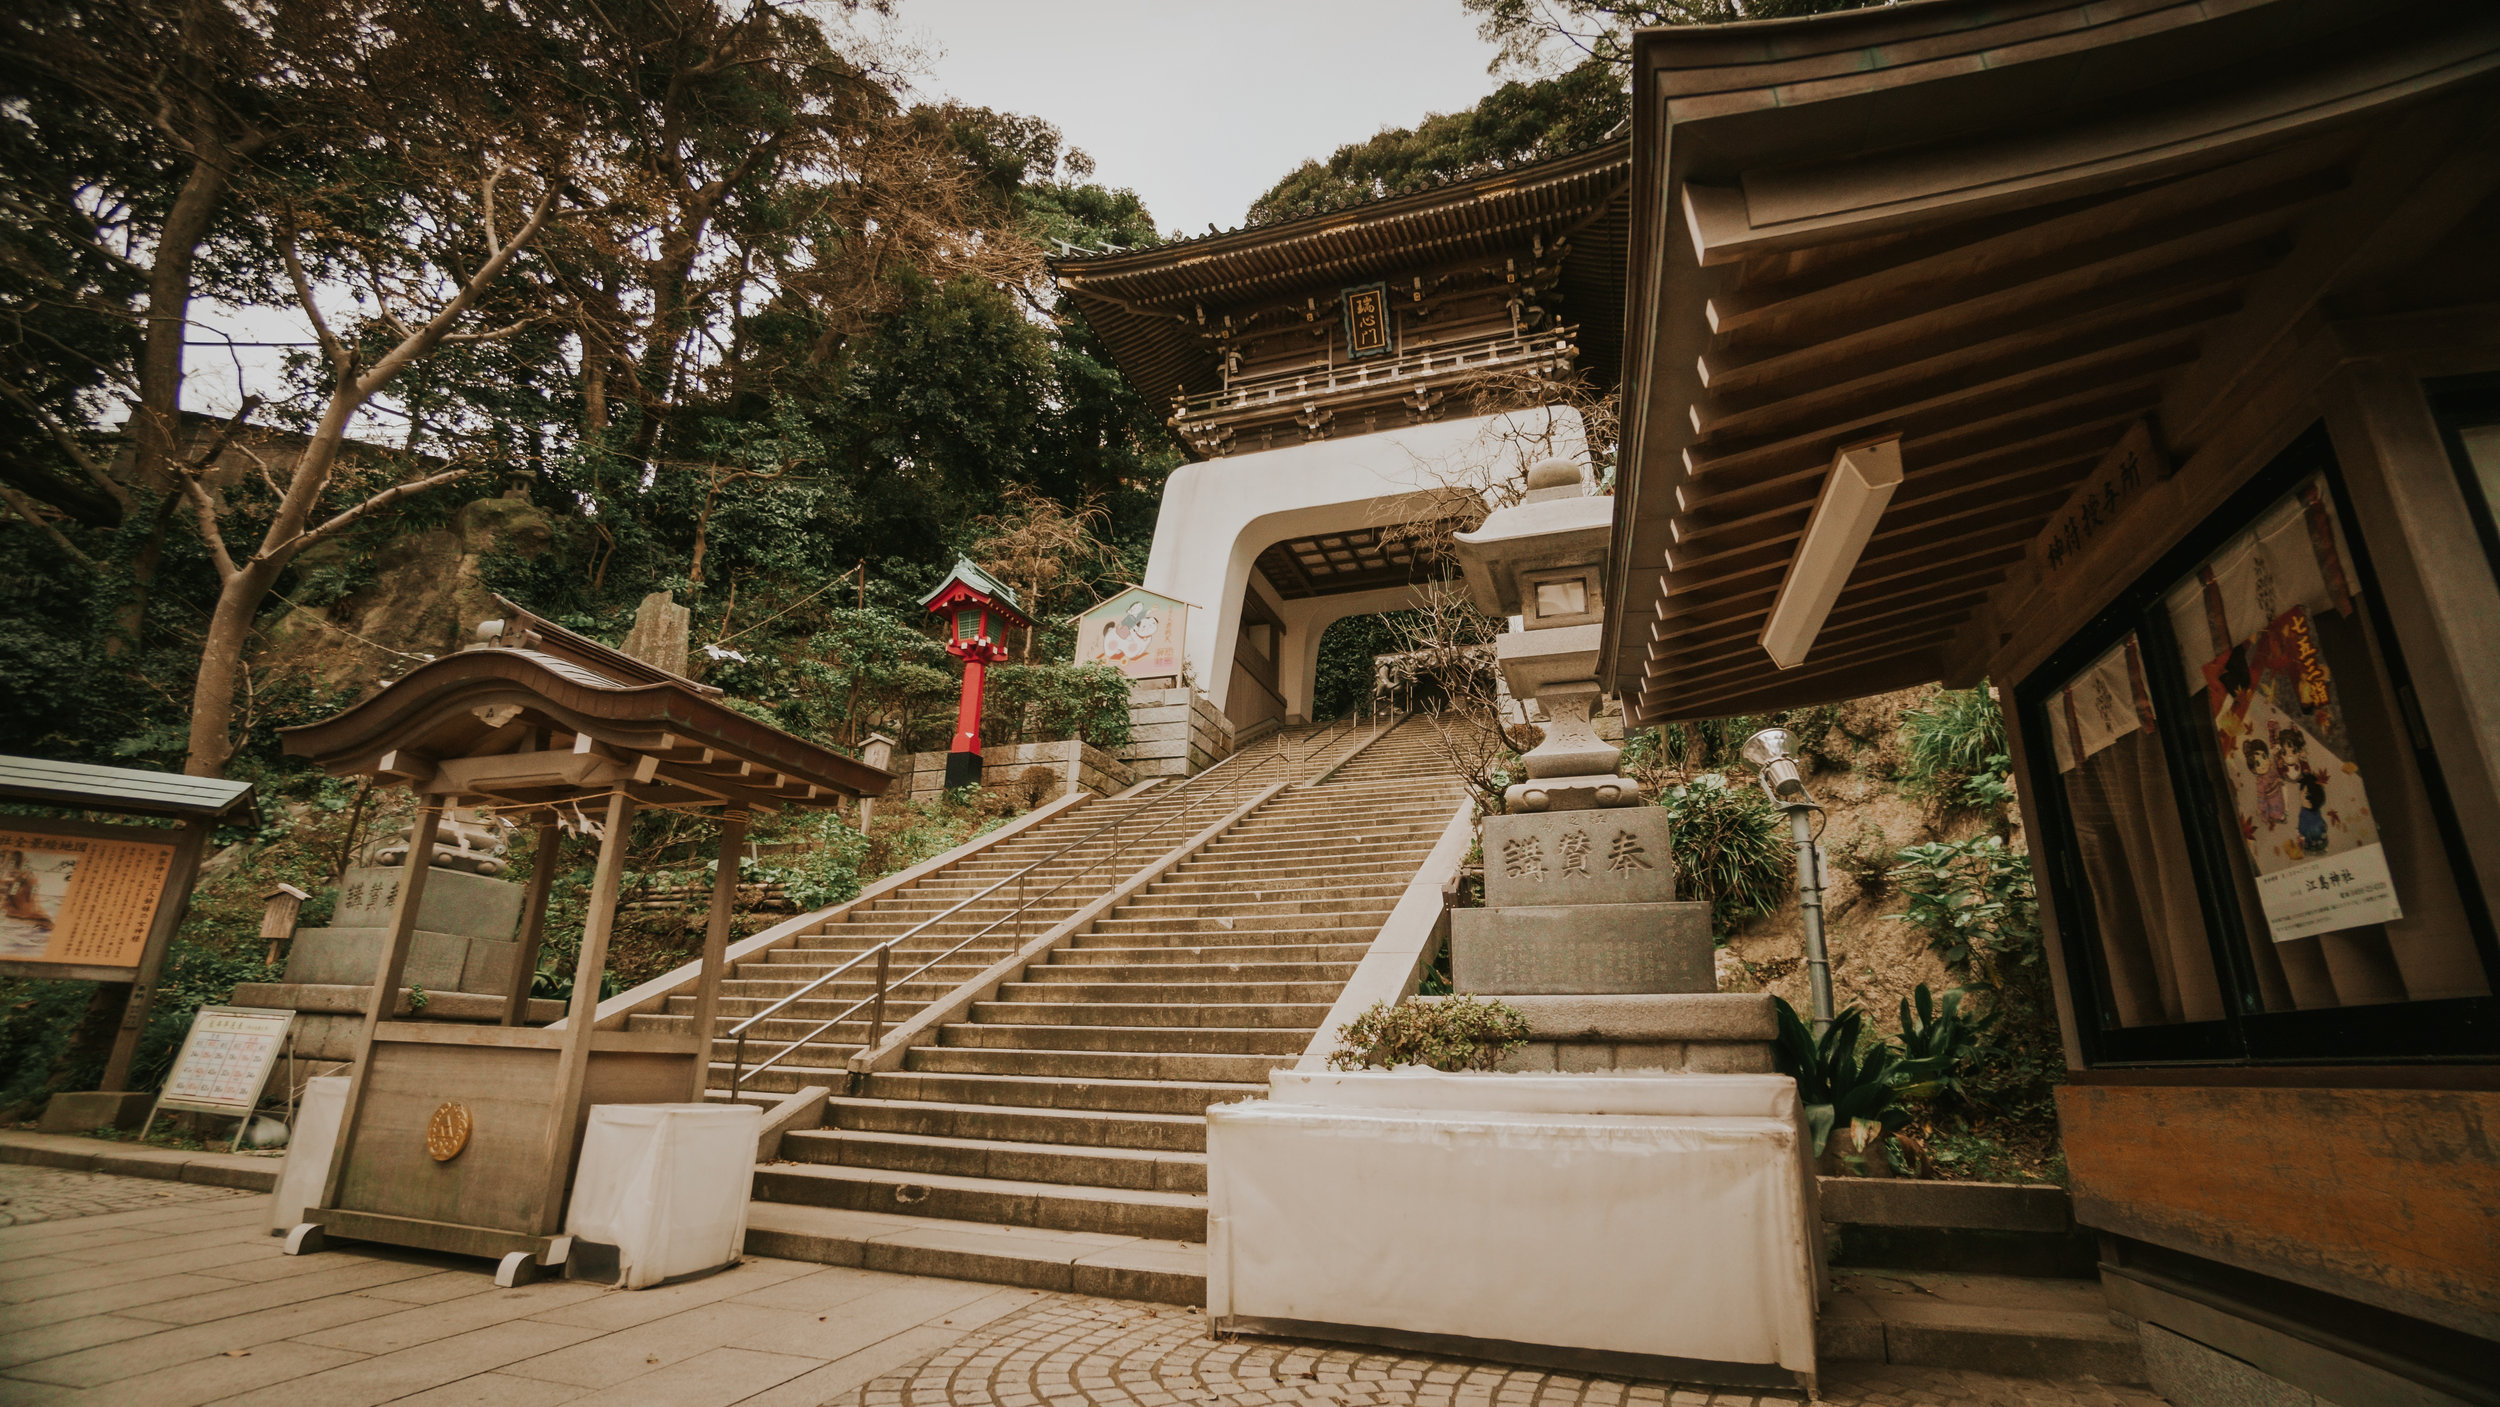 best-things-to-see-in-enoshima-japan-polywander